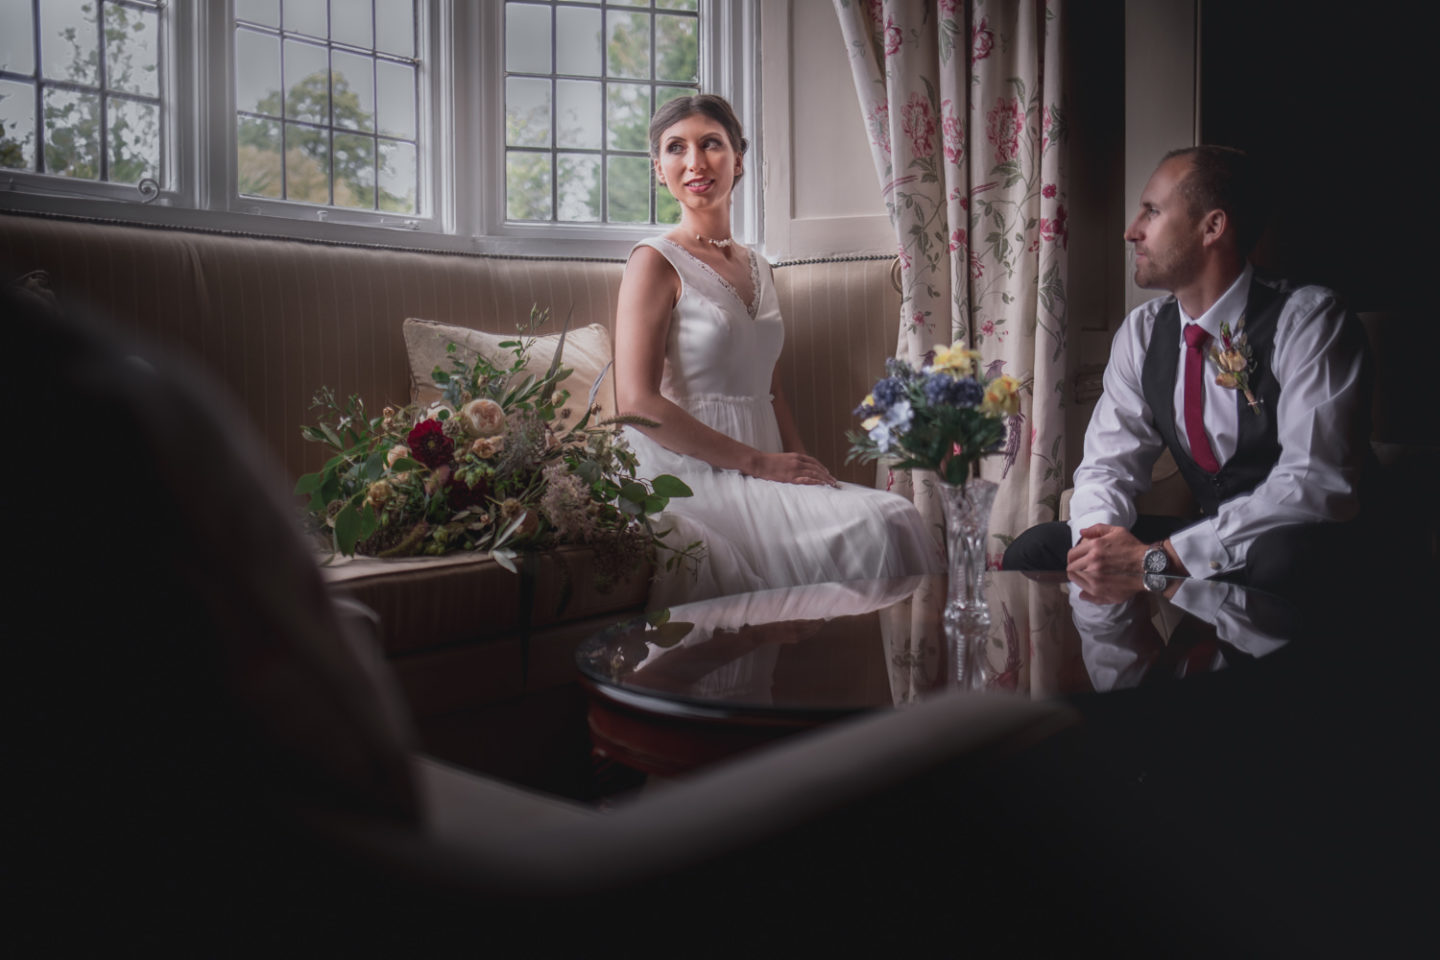 Rustic Intimate Wedding With Romantic Vibes at Findon Manor